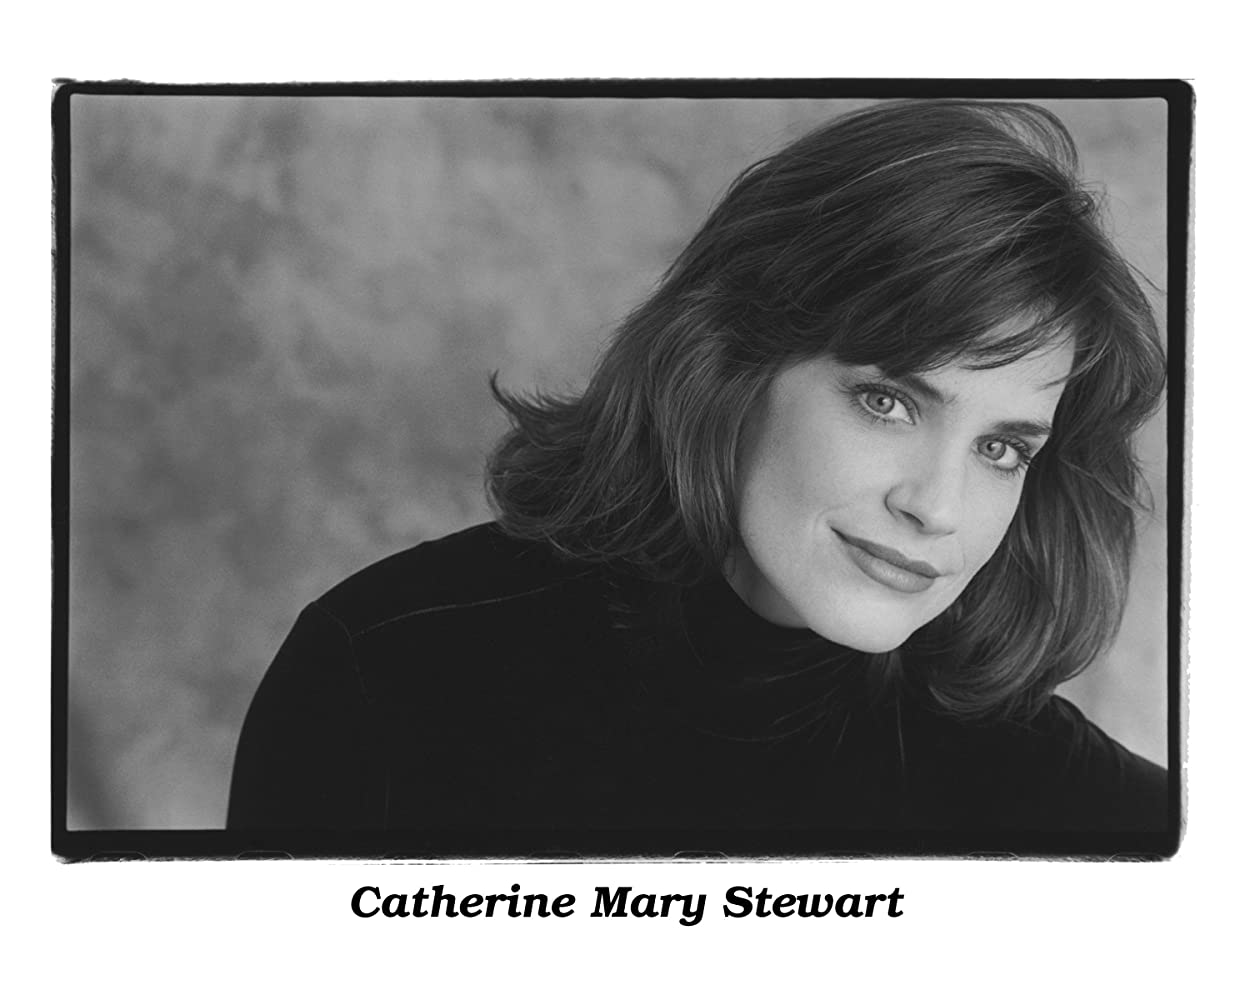 catherine mary stewart nudographycatherine mary stewart filmography, catherine mary stewart wikipedia, catherine mary stewart movies, catherine mary stewart, catherine mary stewart wiki, catherine mary stewart net worth, catherine mary stewart imdb, catherine mary stewart nudography, catherine mary stewart days of our lives, catherine mary stewart measurements, catherine mary stewart mr skin, catherine mary stewart posters, catherine mary stewart bikini, catherine mary stewart age, catherine mary stewart films, catherine mary stewart twitter, catherine mary stewart ancensored